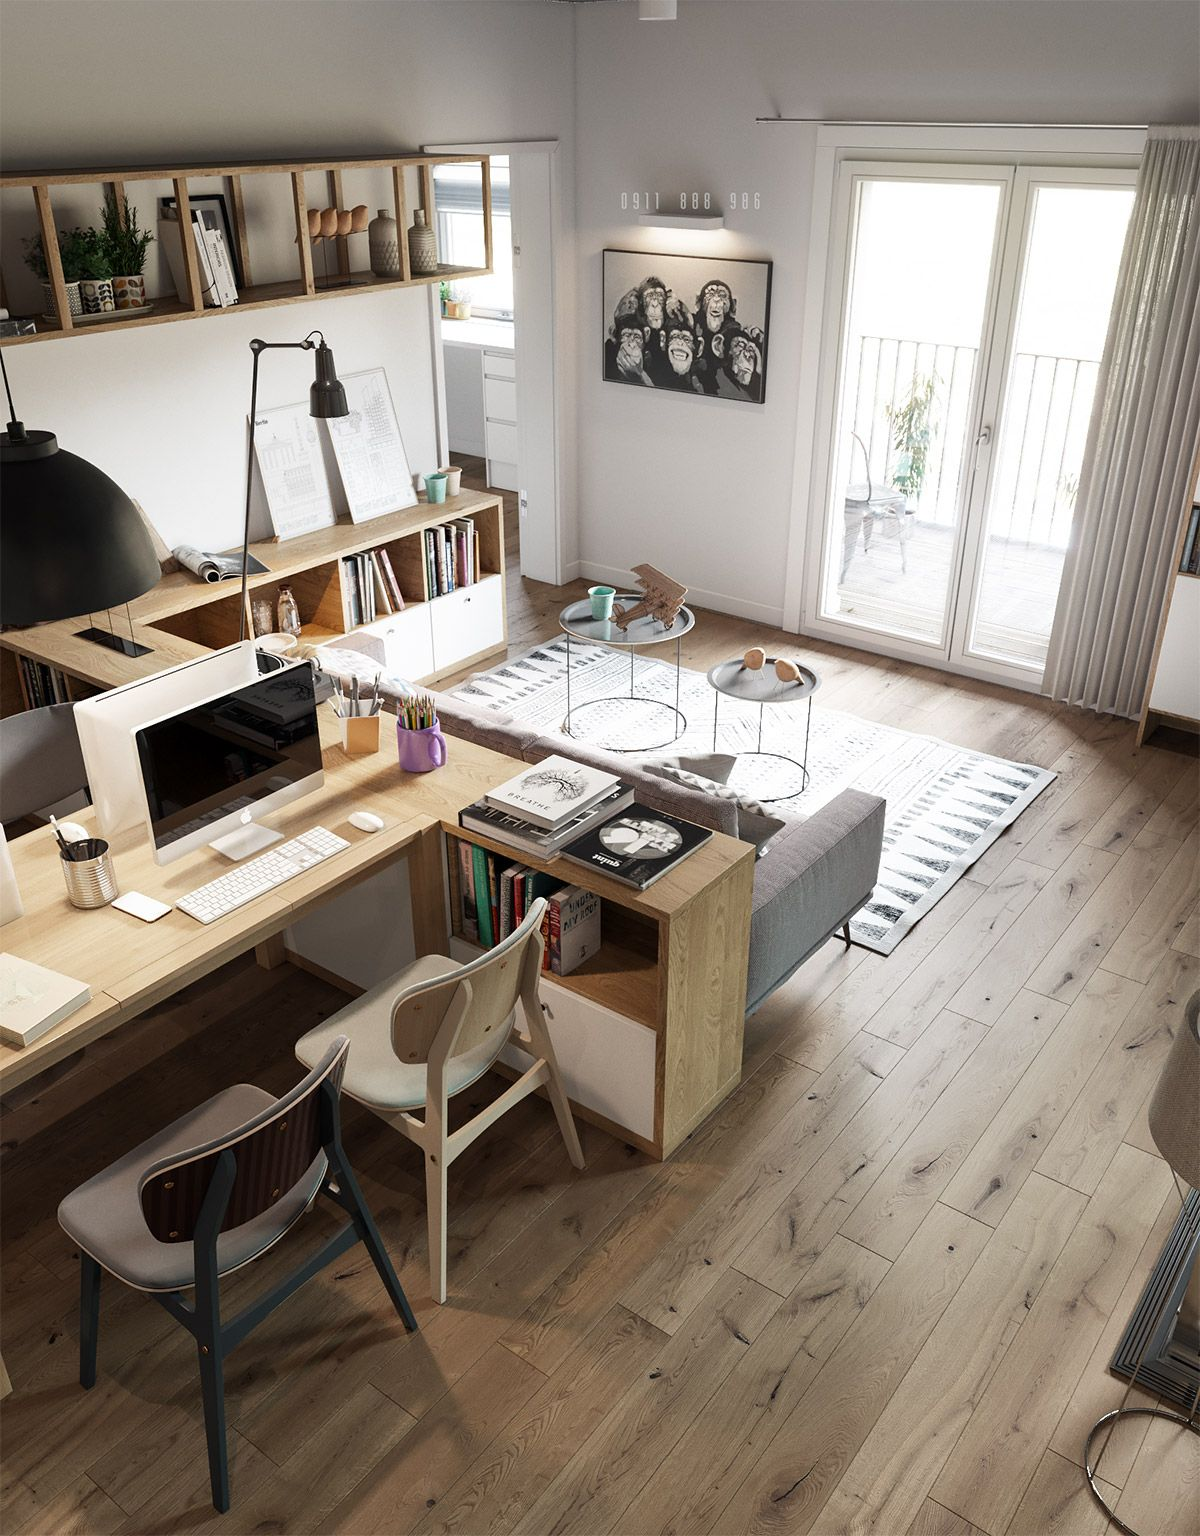 51 Home Workspace Designs With Ideas Tips And Accessories To Help You Design Yours Home Office Design Office Interior Design Workspace Design